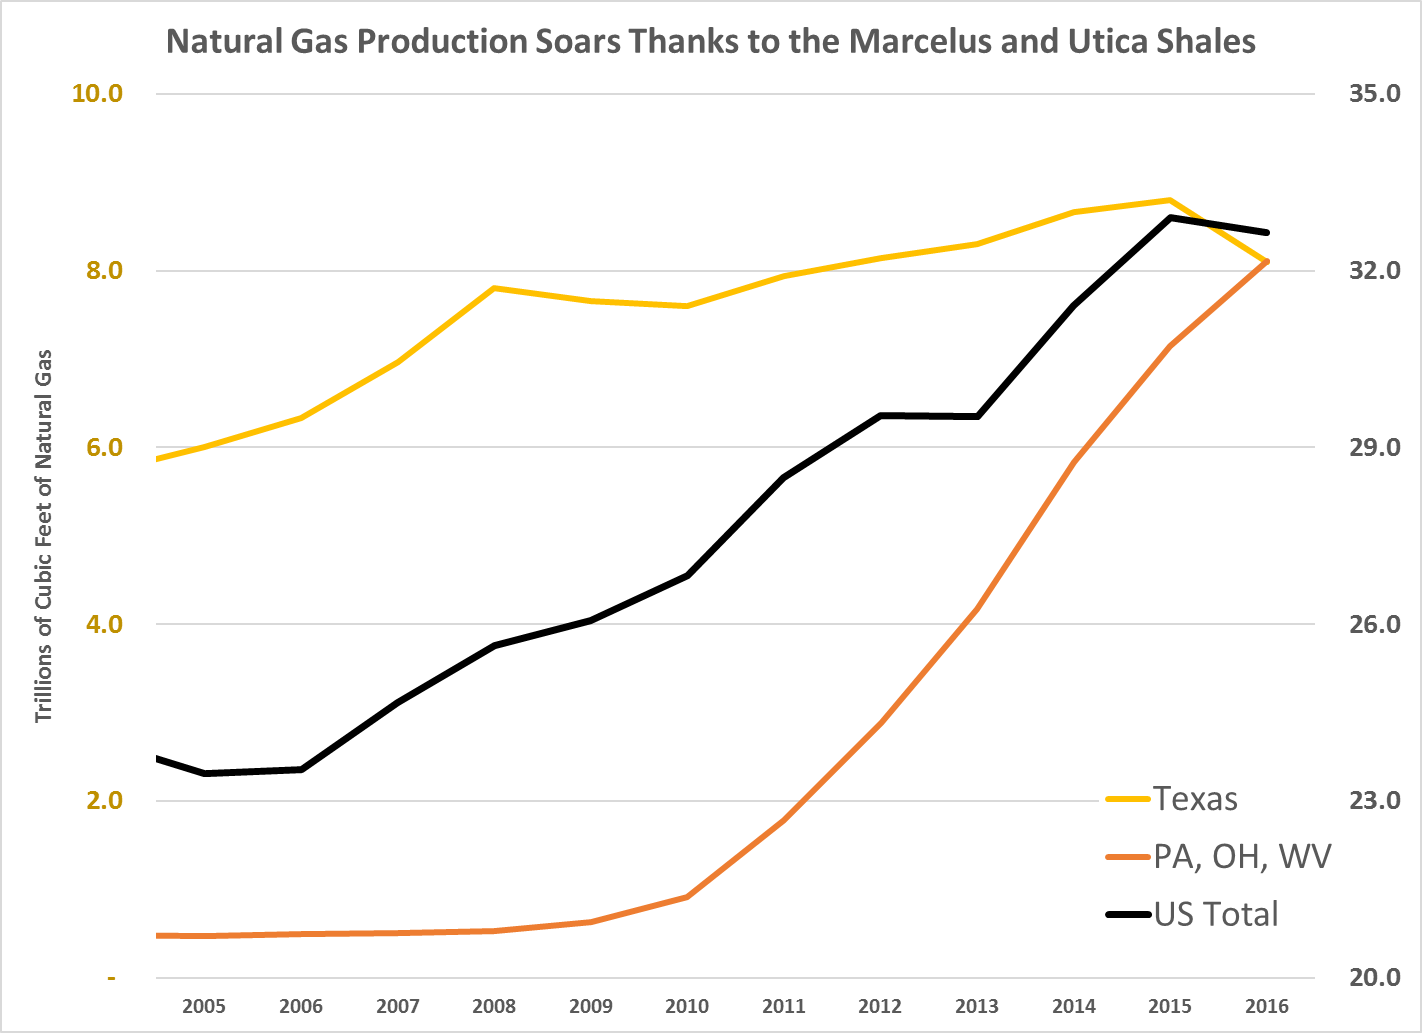 Thanks to the shale revolution, natural gas production soared. By 2012, the U.S. edged out Russia to become the world's largest producer of natural gas.